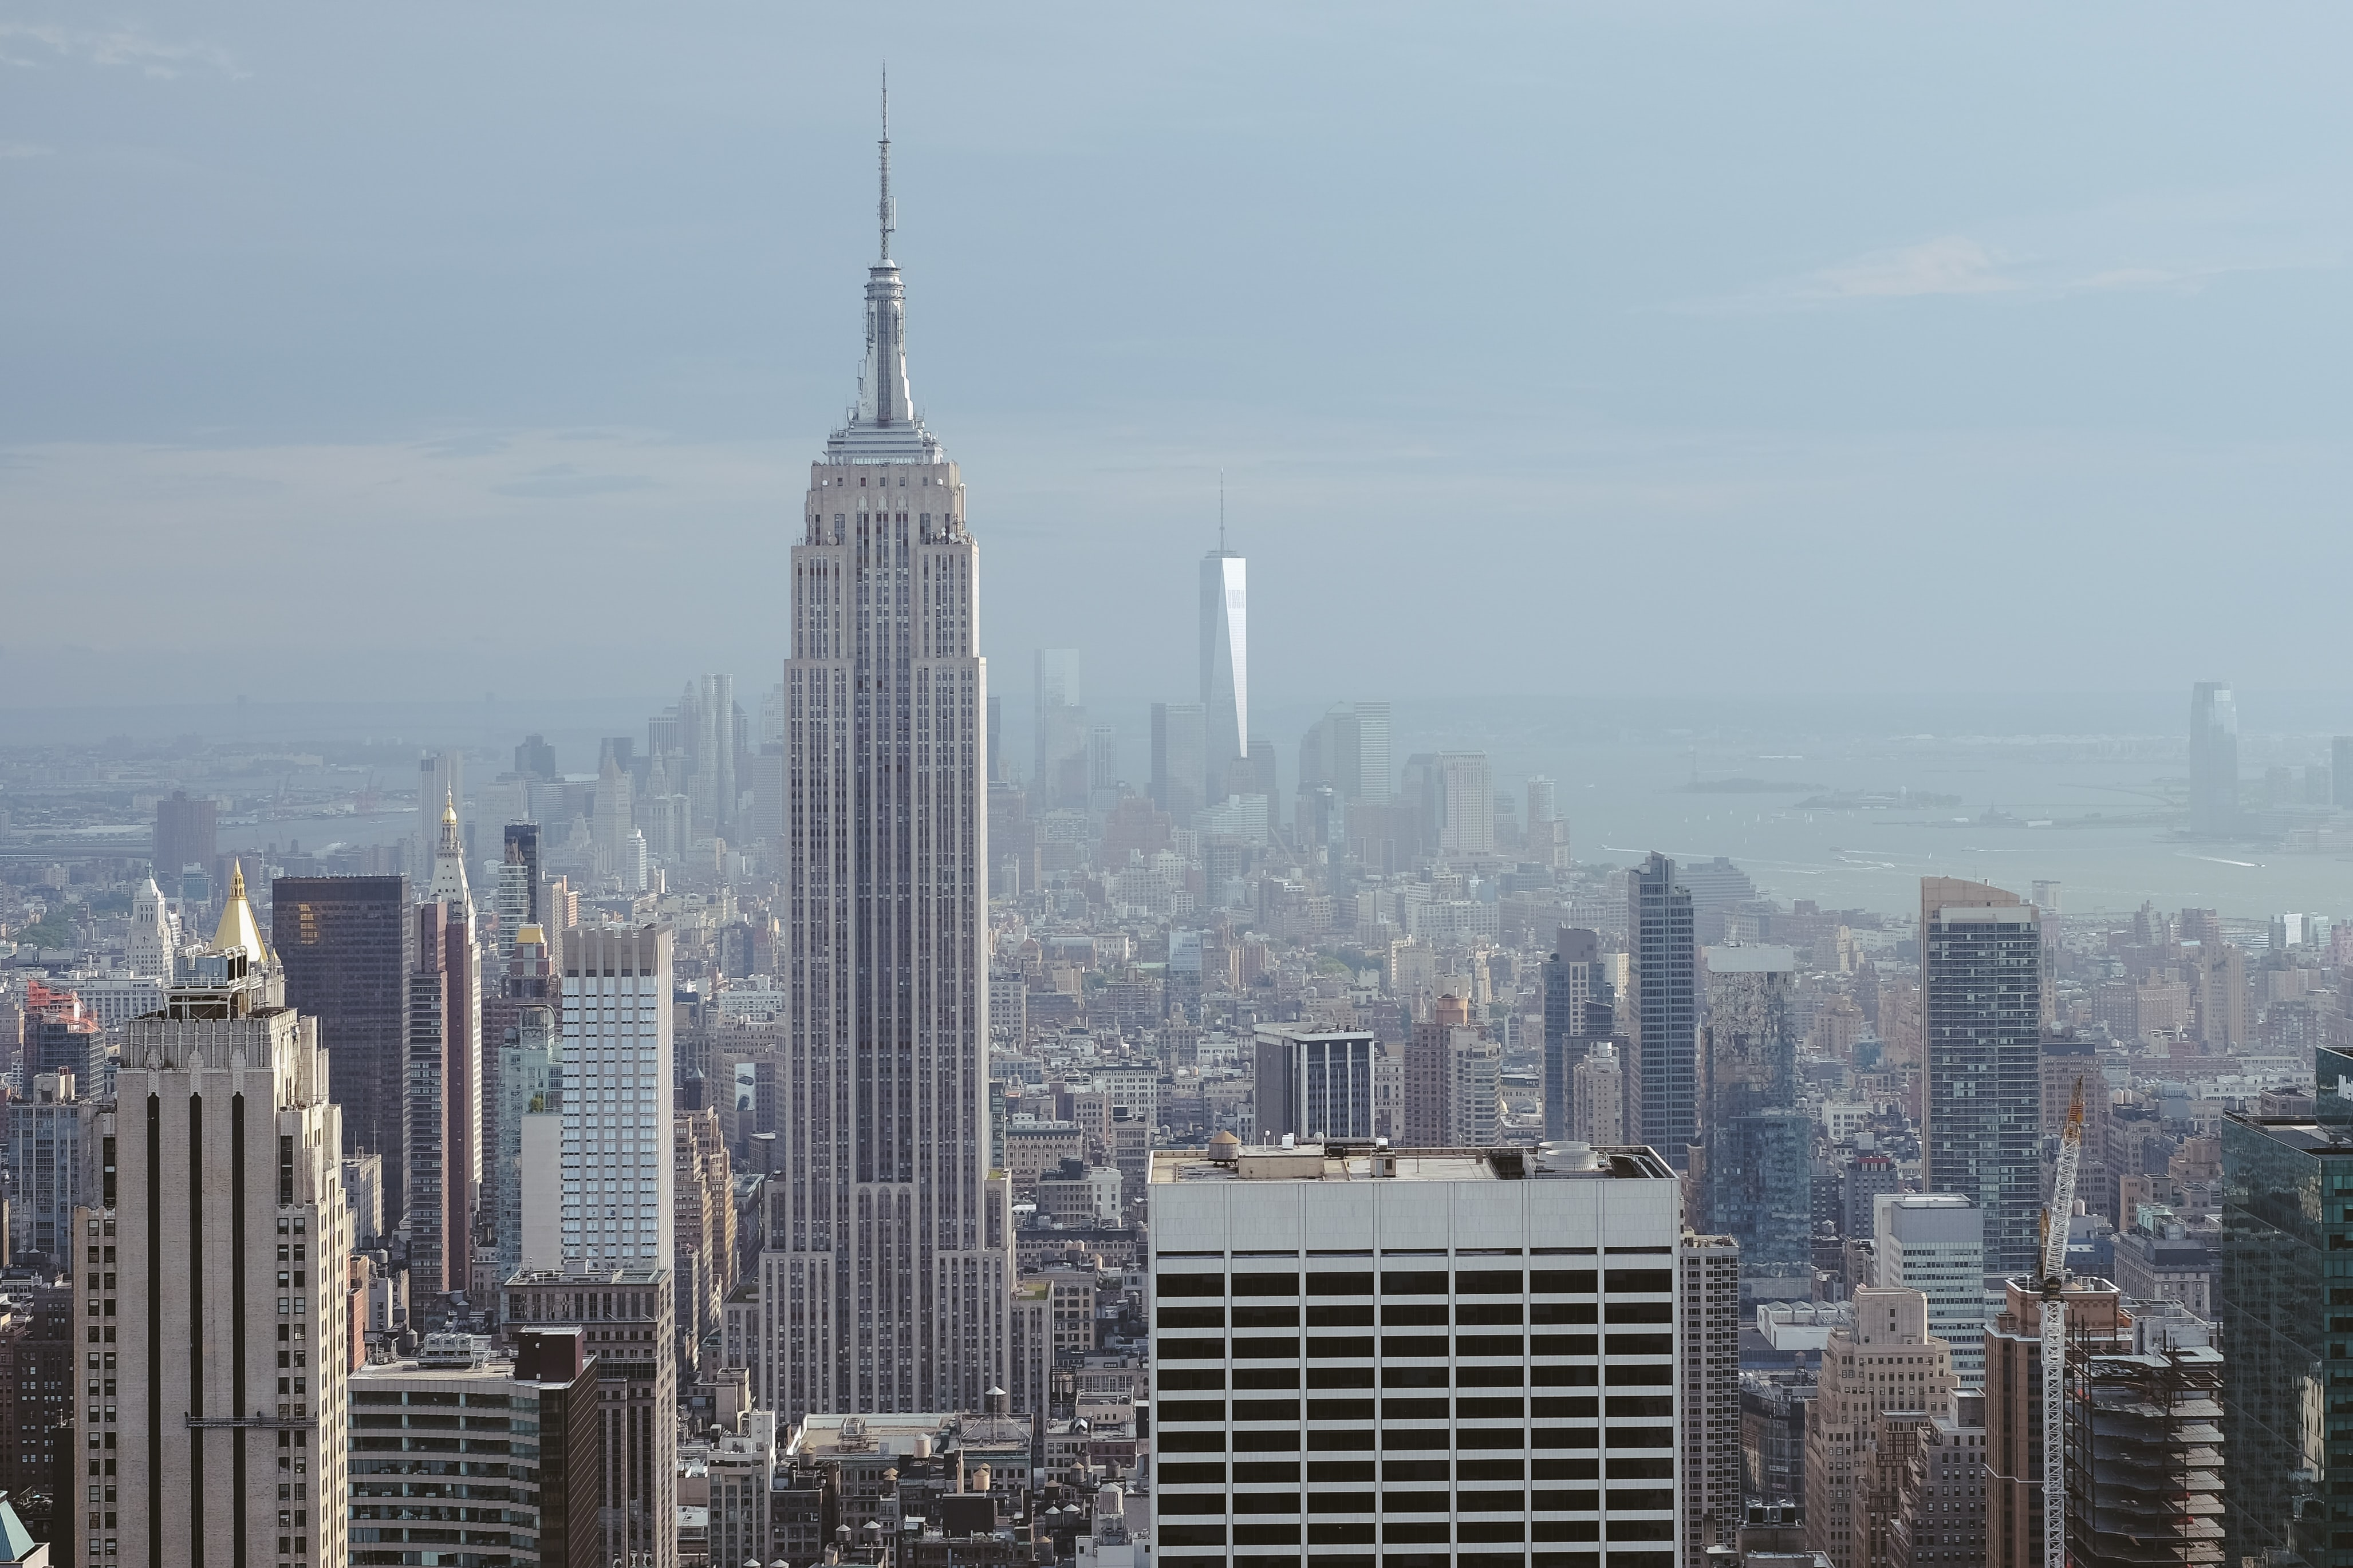 View of the Empire State Building and the Financial District in the distance in New York City